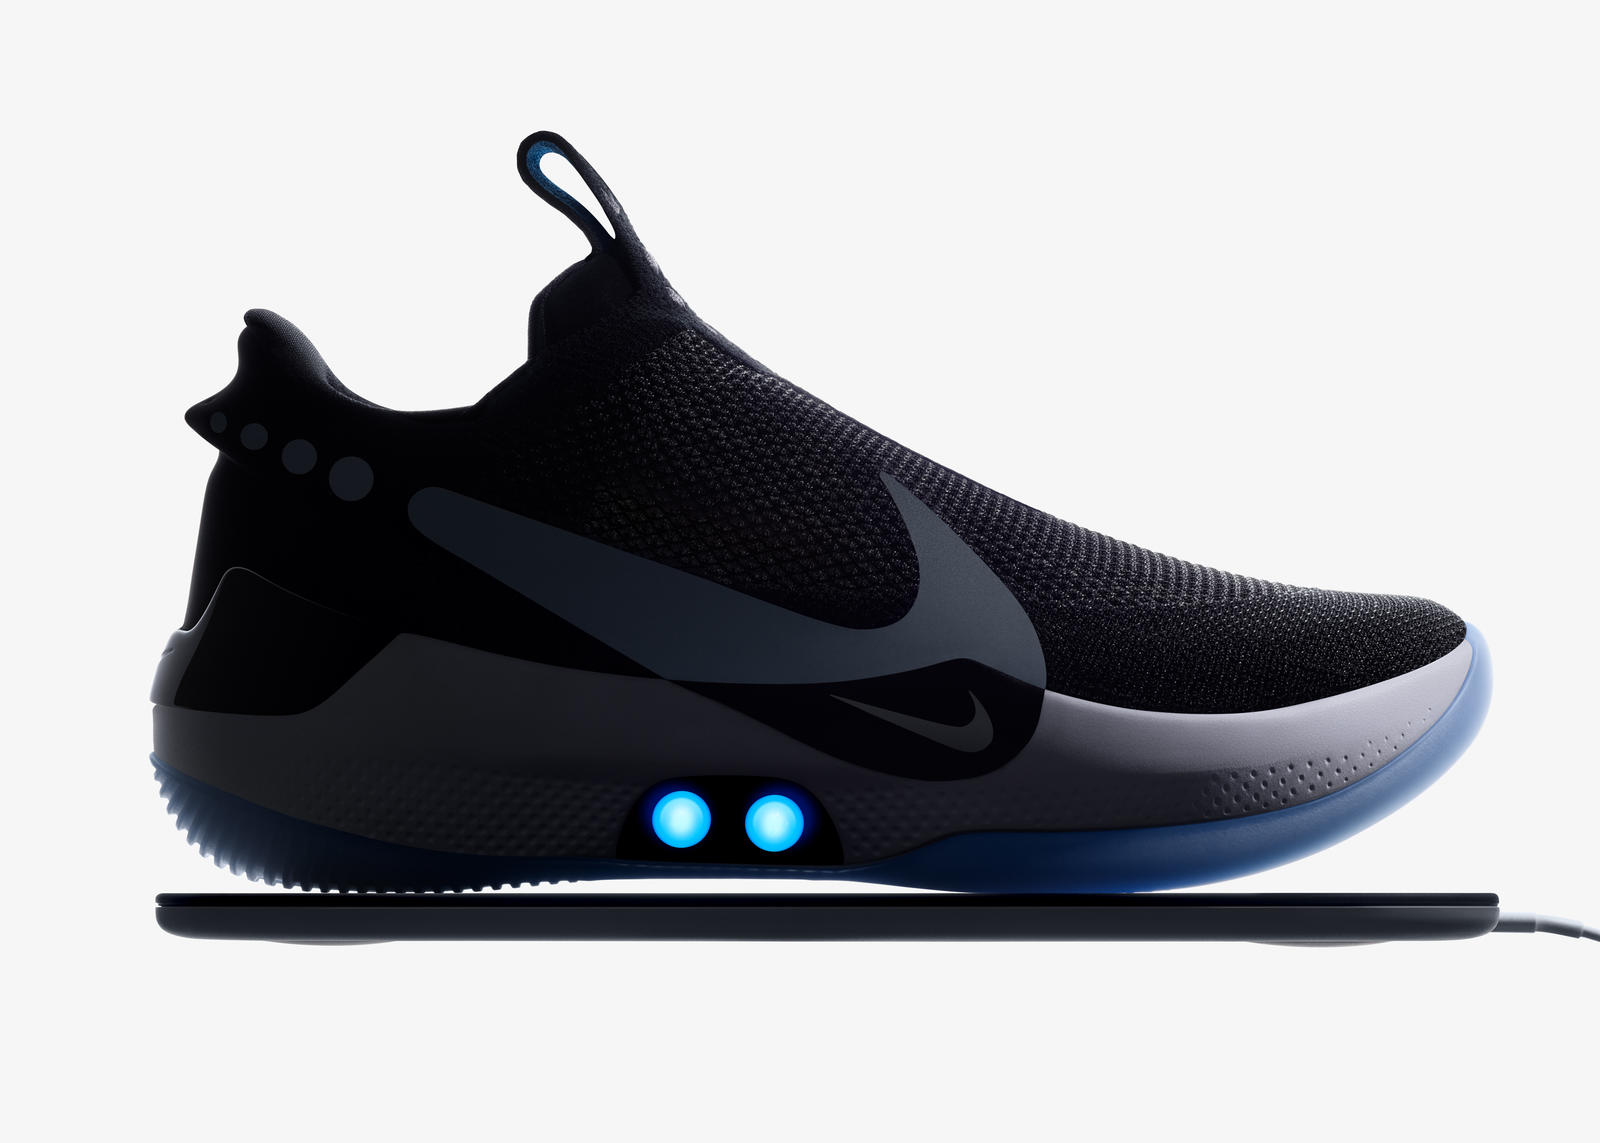 c506ab912977 Introducing the Nike Adapt BB - Nike News